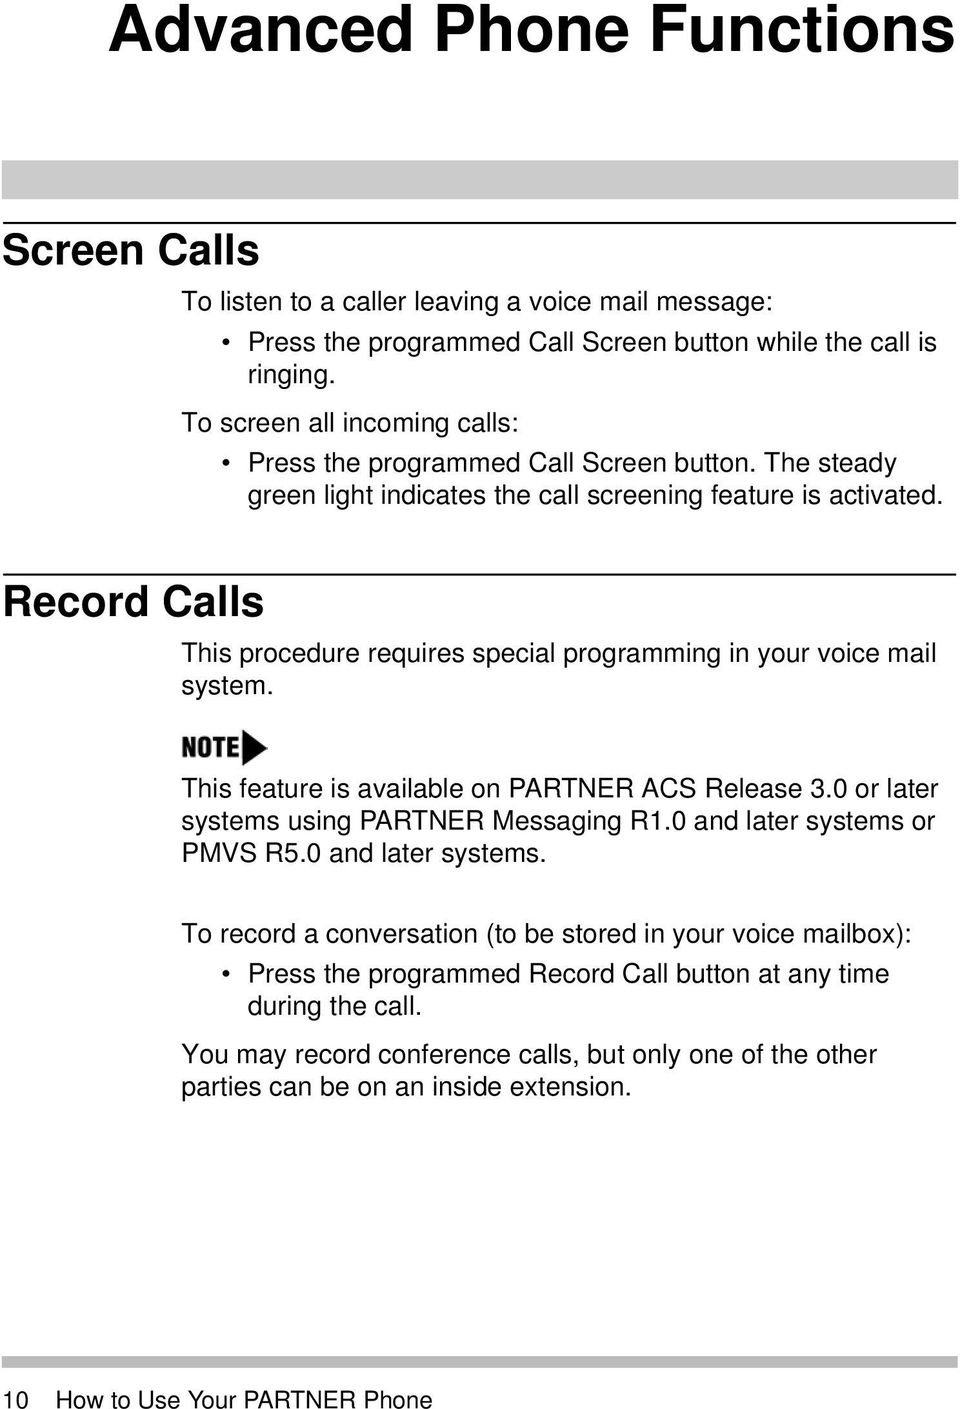 Record Calls This procedure requires special programming in your voice mail system. This feature is available on PARTNER ACS Release 3.0 or later systems using PARTNER Messaging R1.